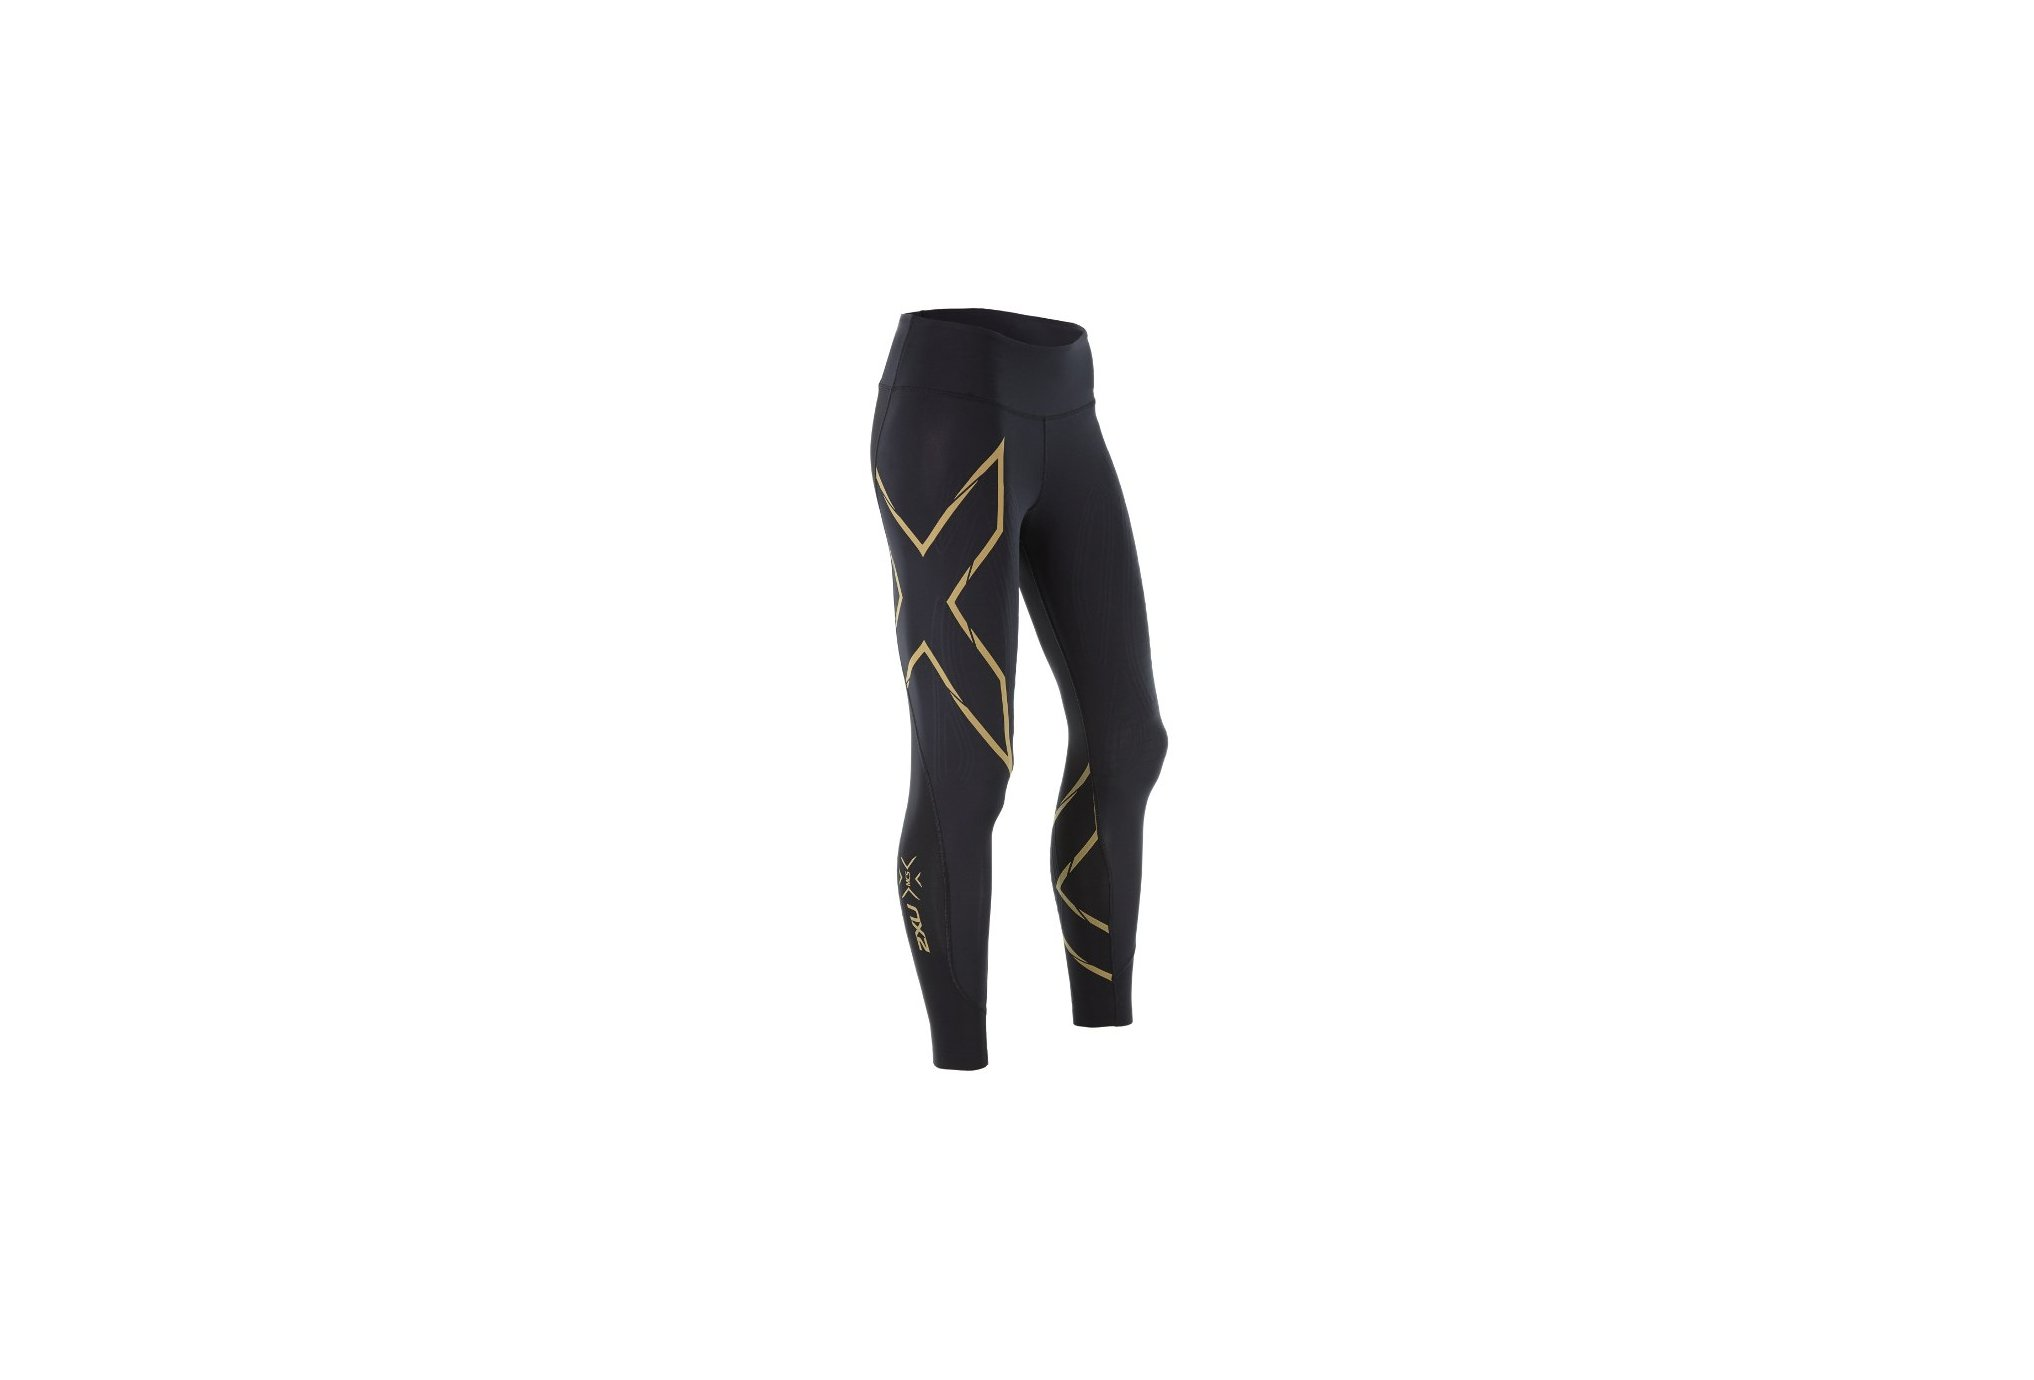 2xu Collant elite mcs w vêtement running femme